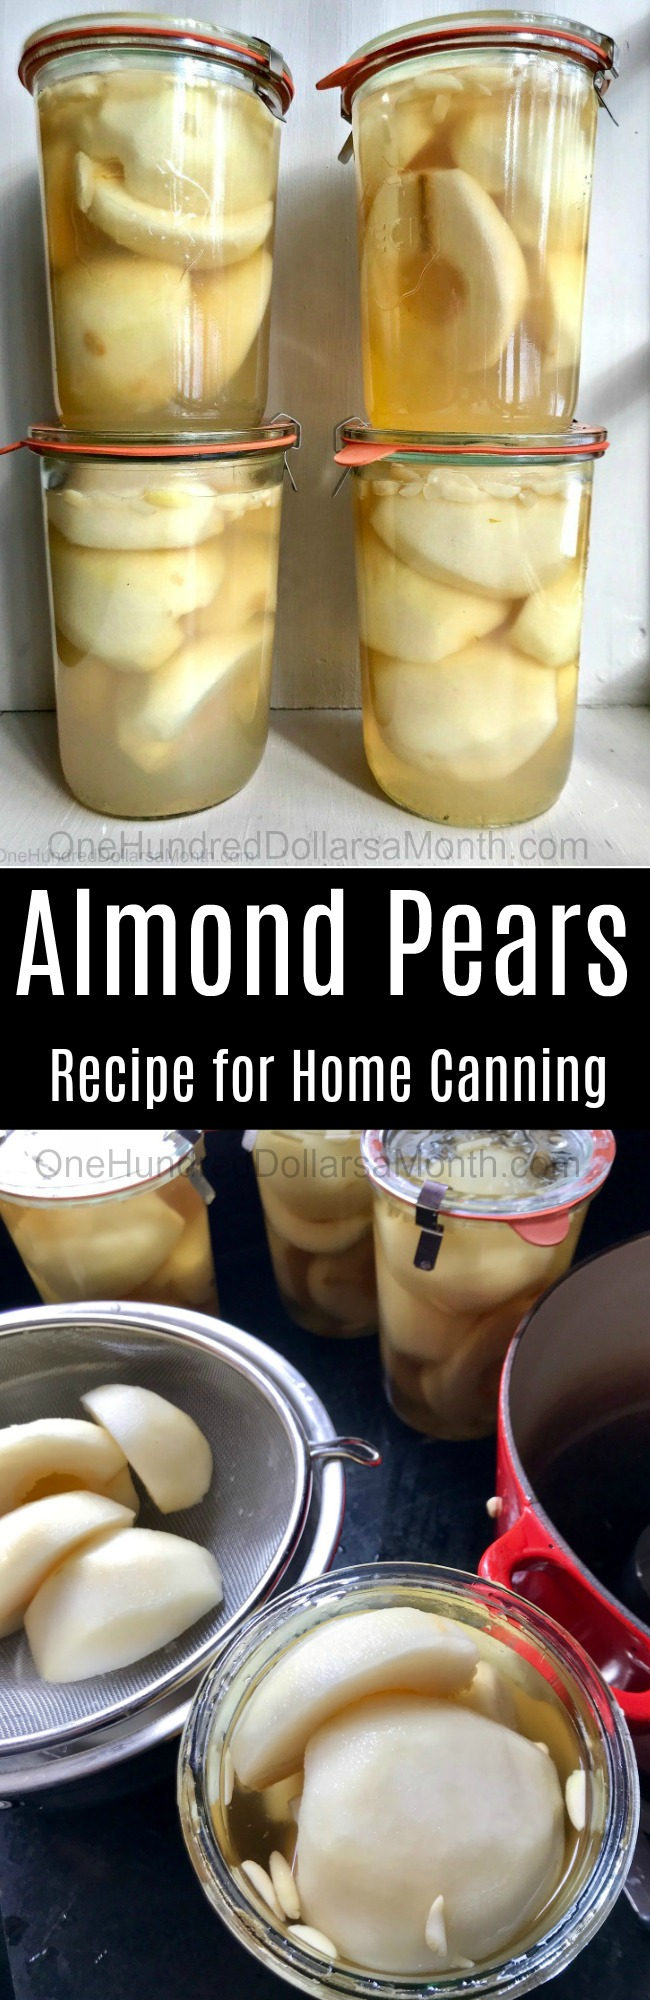 Almond Pears – Home Canning Recipe